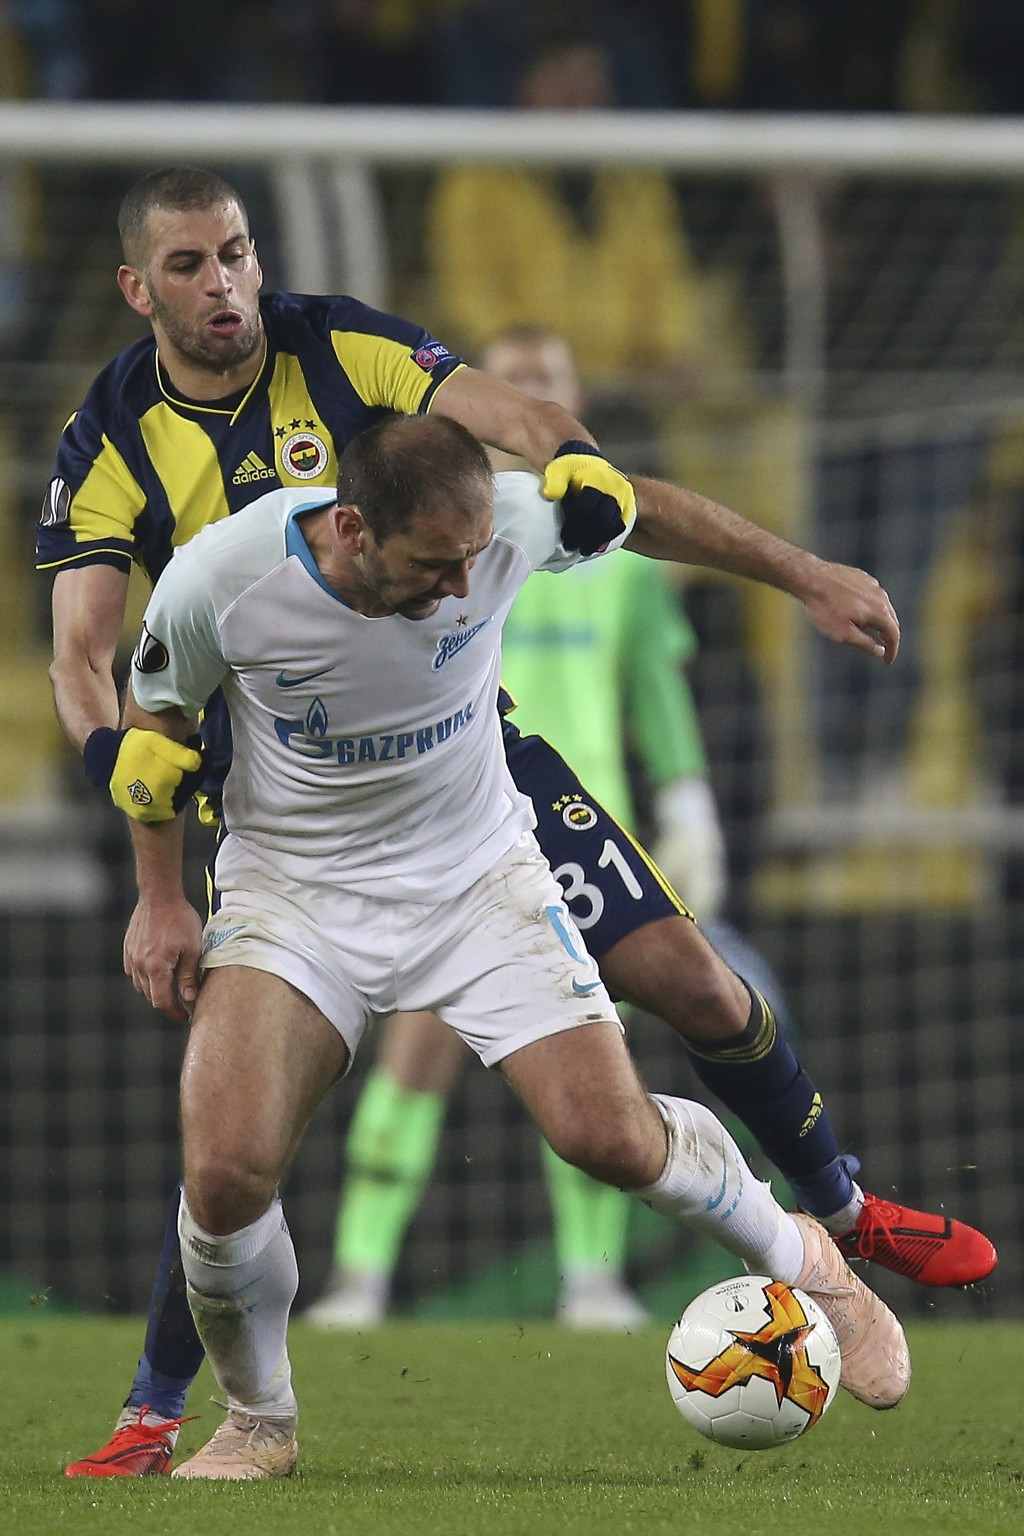 Fenerbahce's Islam Slimani, rear, fights for the ball with Zenit St. Petersburg Branislav Ivanovic during the Europa League round of 32 soccer match b